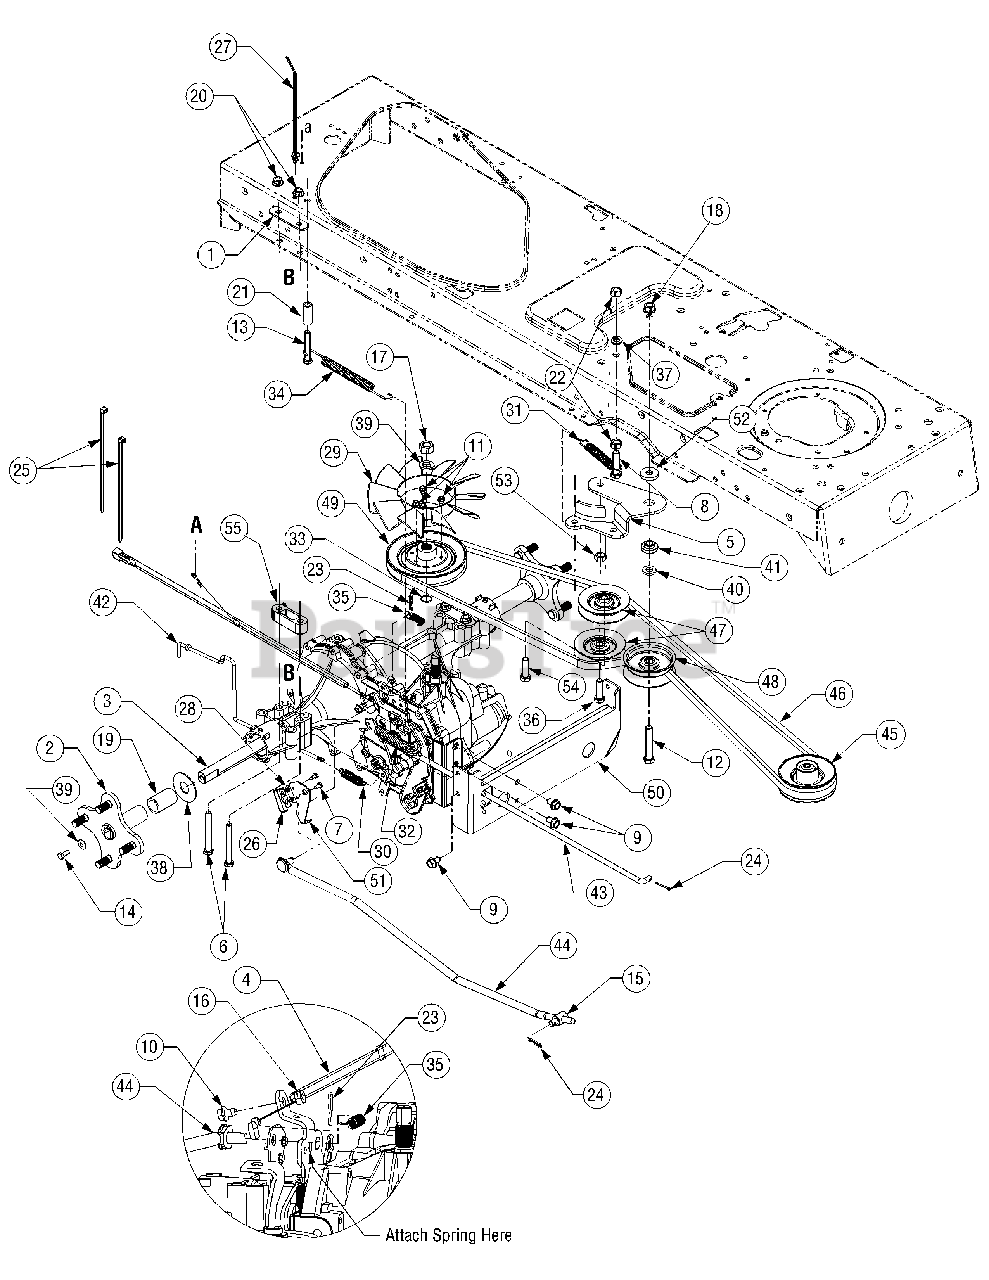 Cub Cadet Parts on the Drive System Diagram for SLT 1554